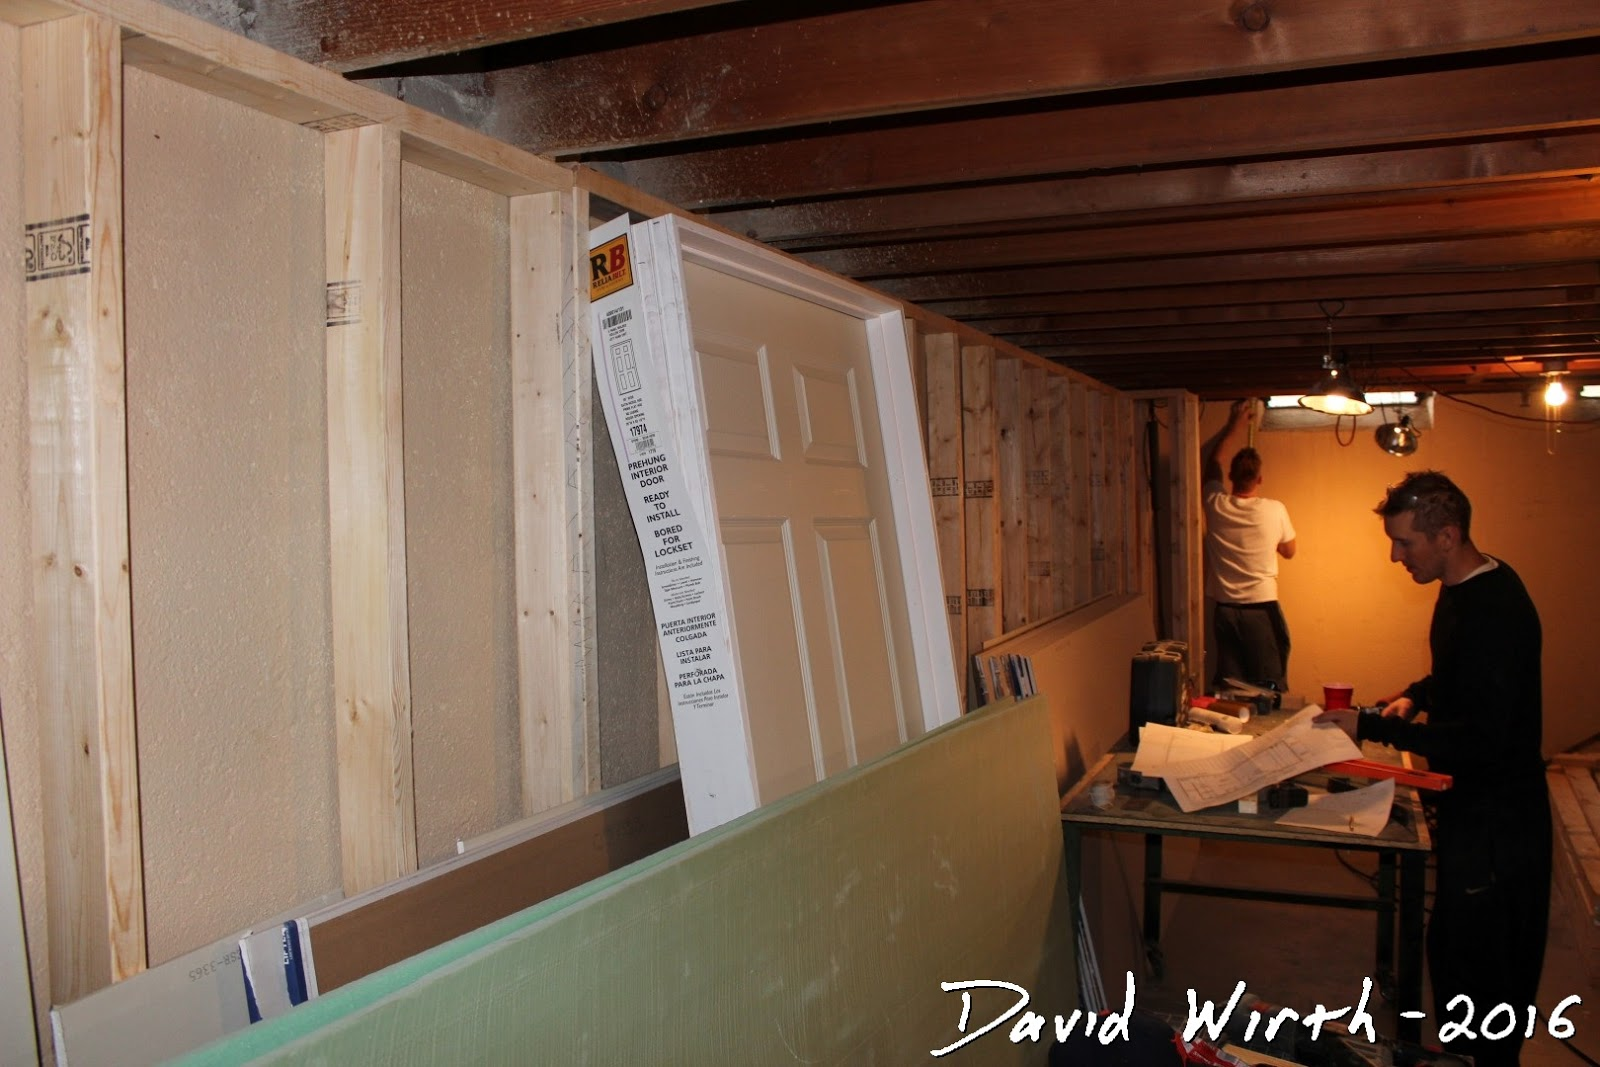 Basement Remodel Plans - How to Refinish it Yourself and